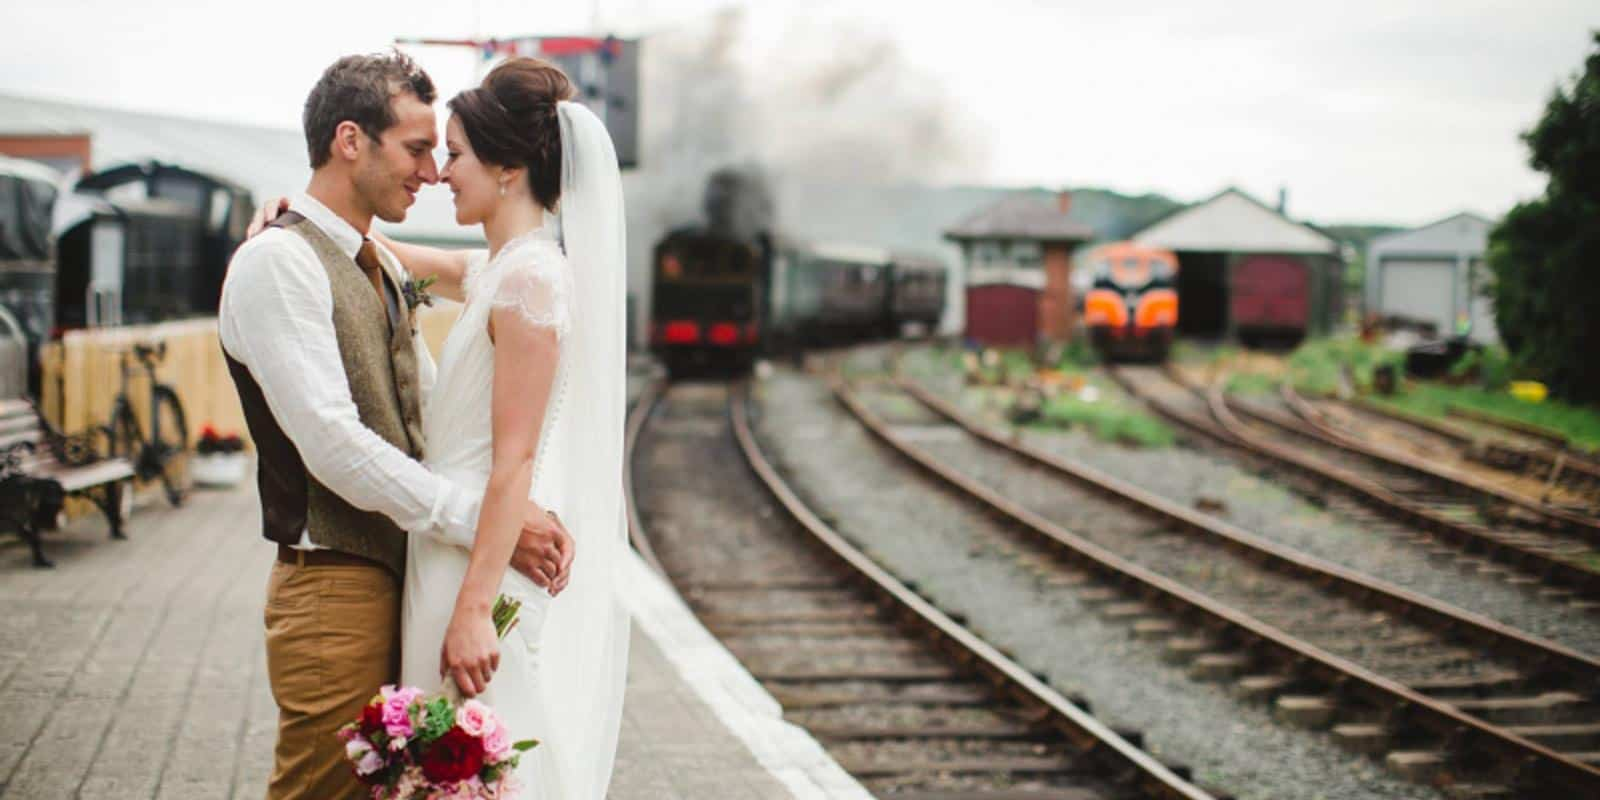 Wedding photography at our station